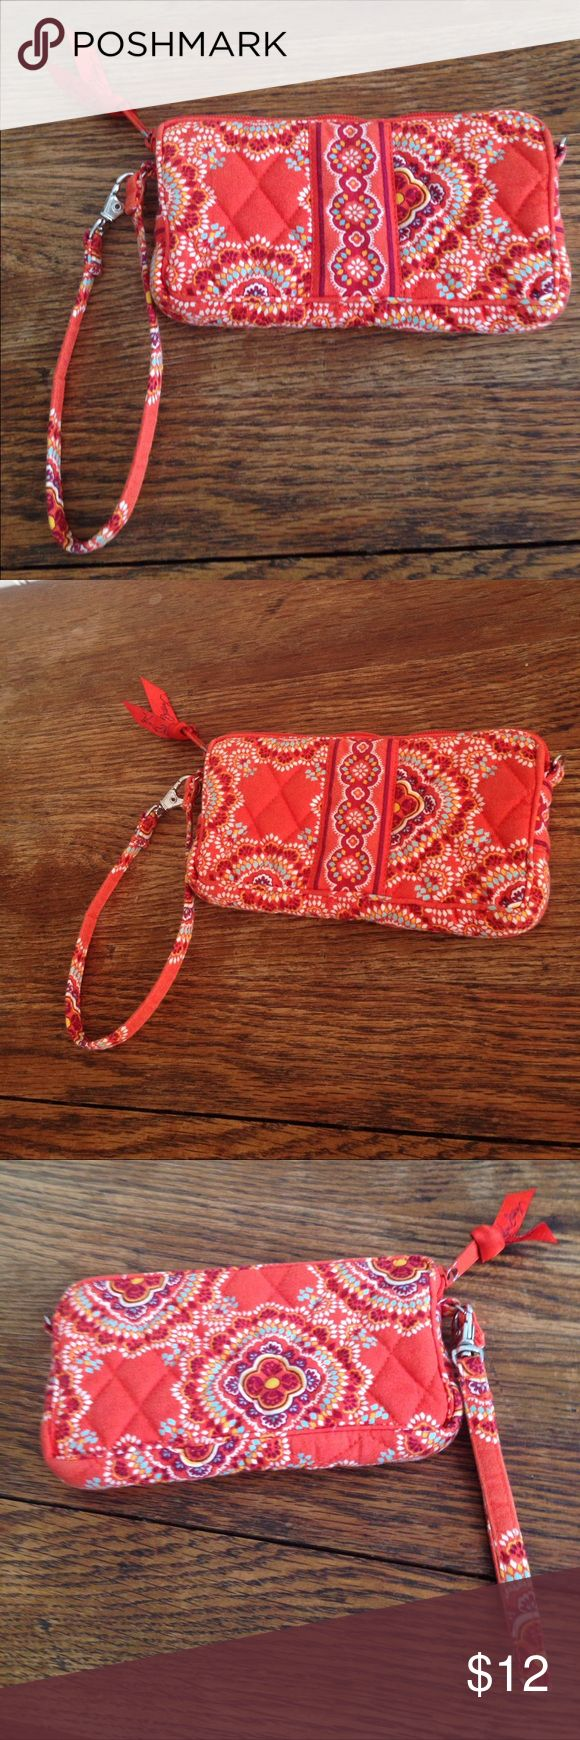 "Vera Bradley wristlet paprika pattern Vera Bradley wristlet paprika pattern, orange ,zippers at top, 7""across, 4"" high and 1"" wide, good condition Vera Bradley Bags Clutches & Wristlets"